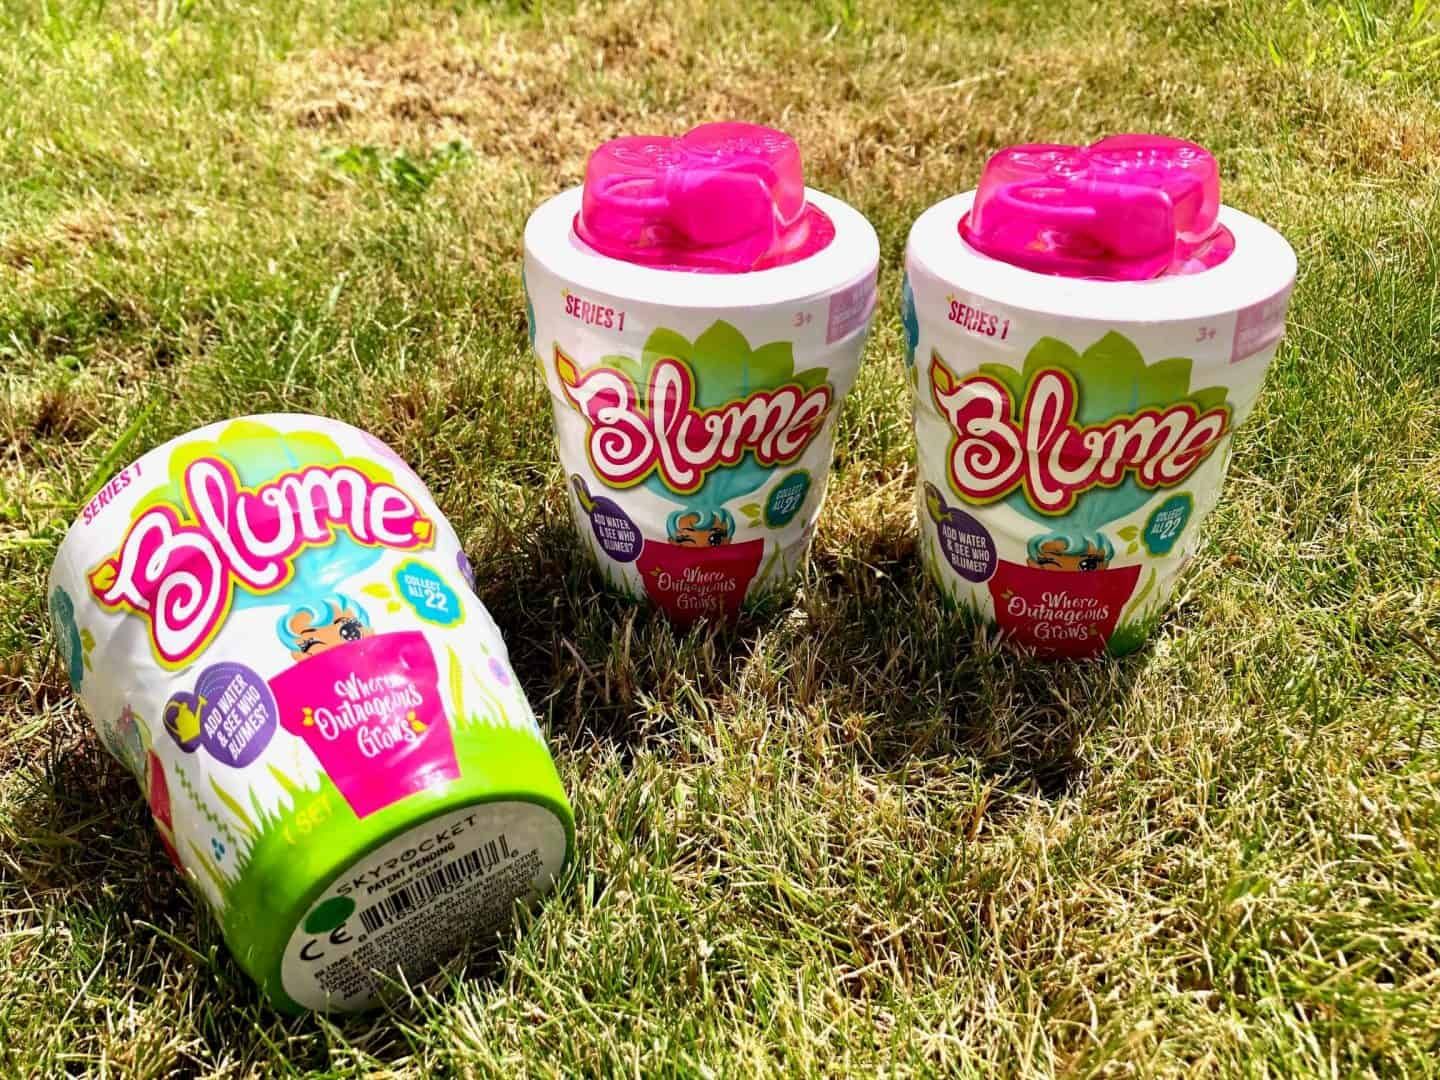 Blume Dolls Series 1: Grow Out of Flower Pots - Review